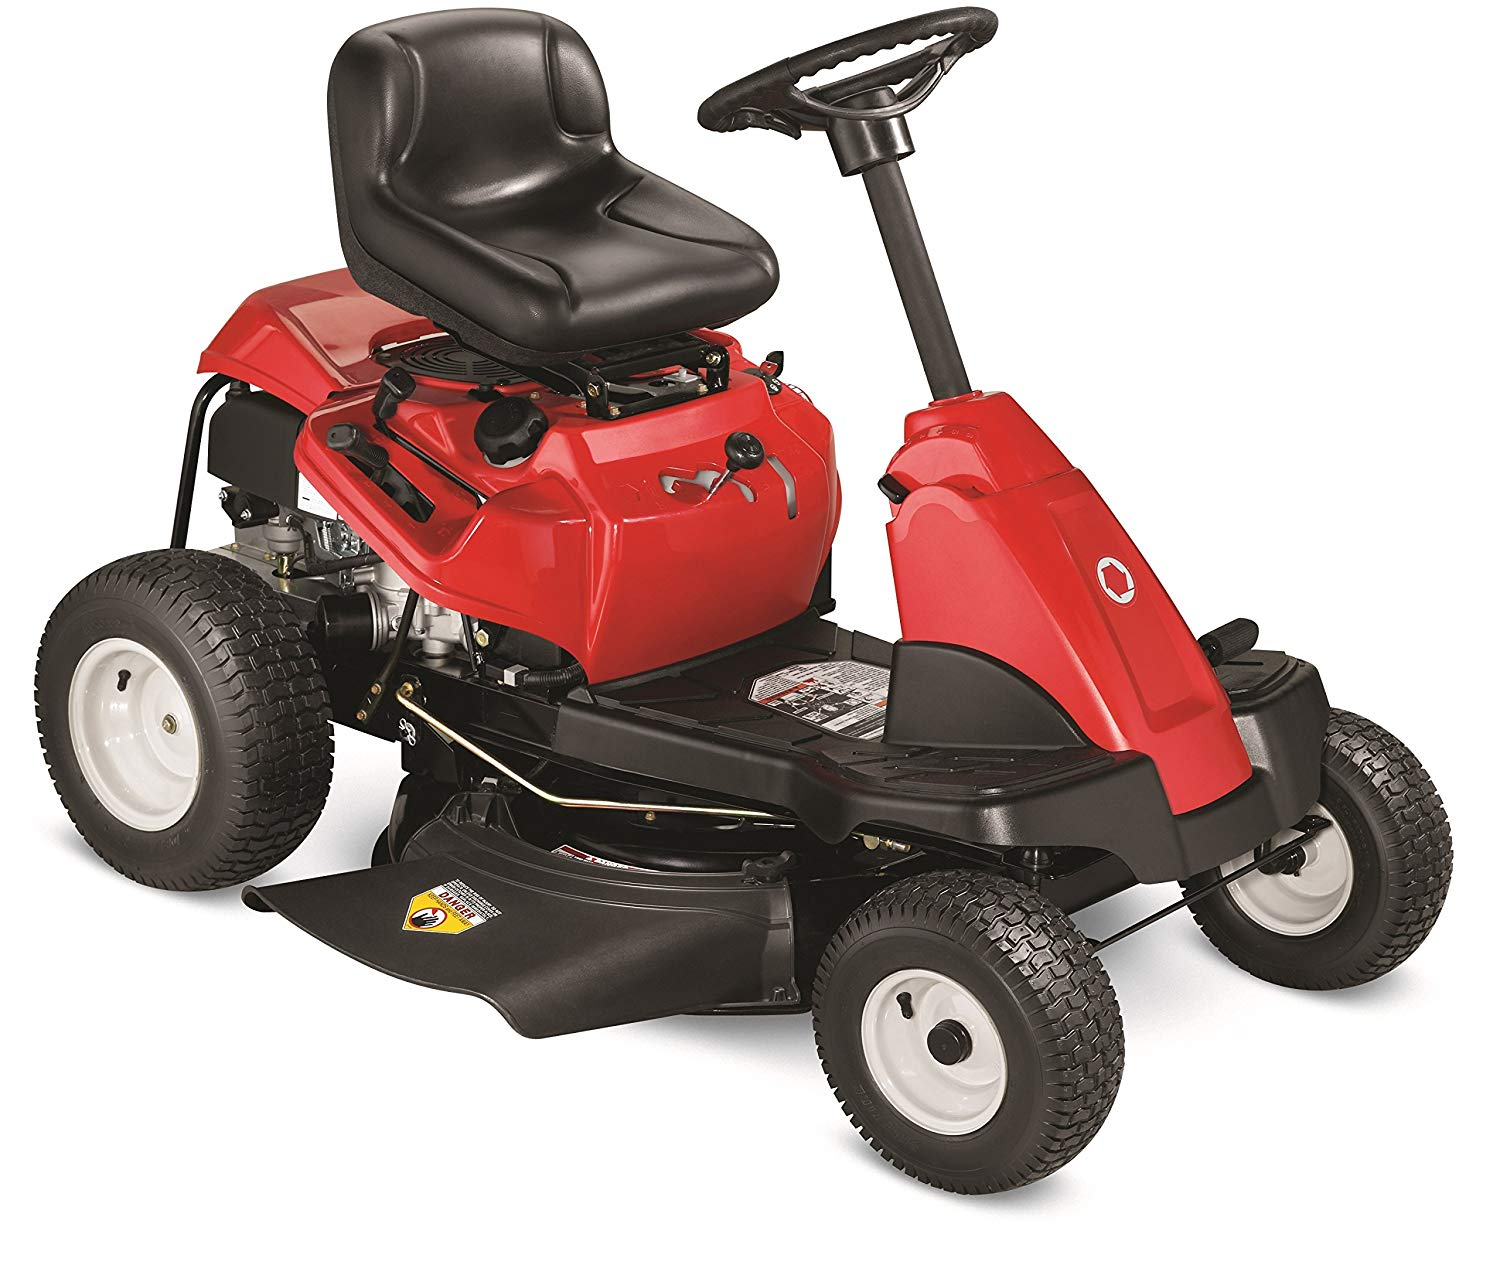 Troy-Bilt Premium Neighborhood Riding Lawn Mower